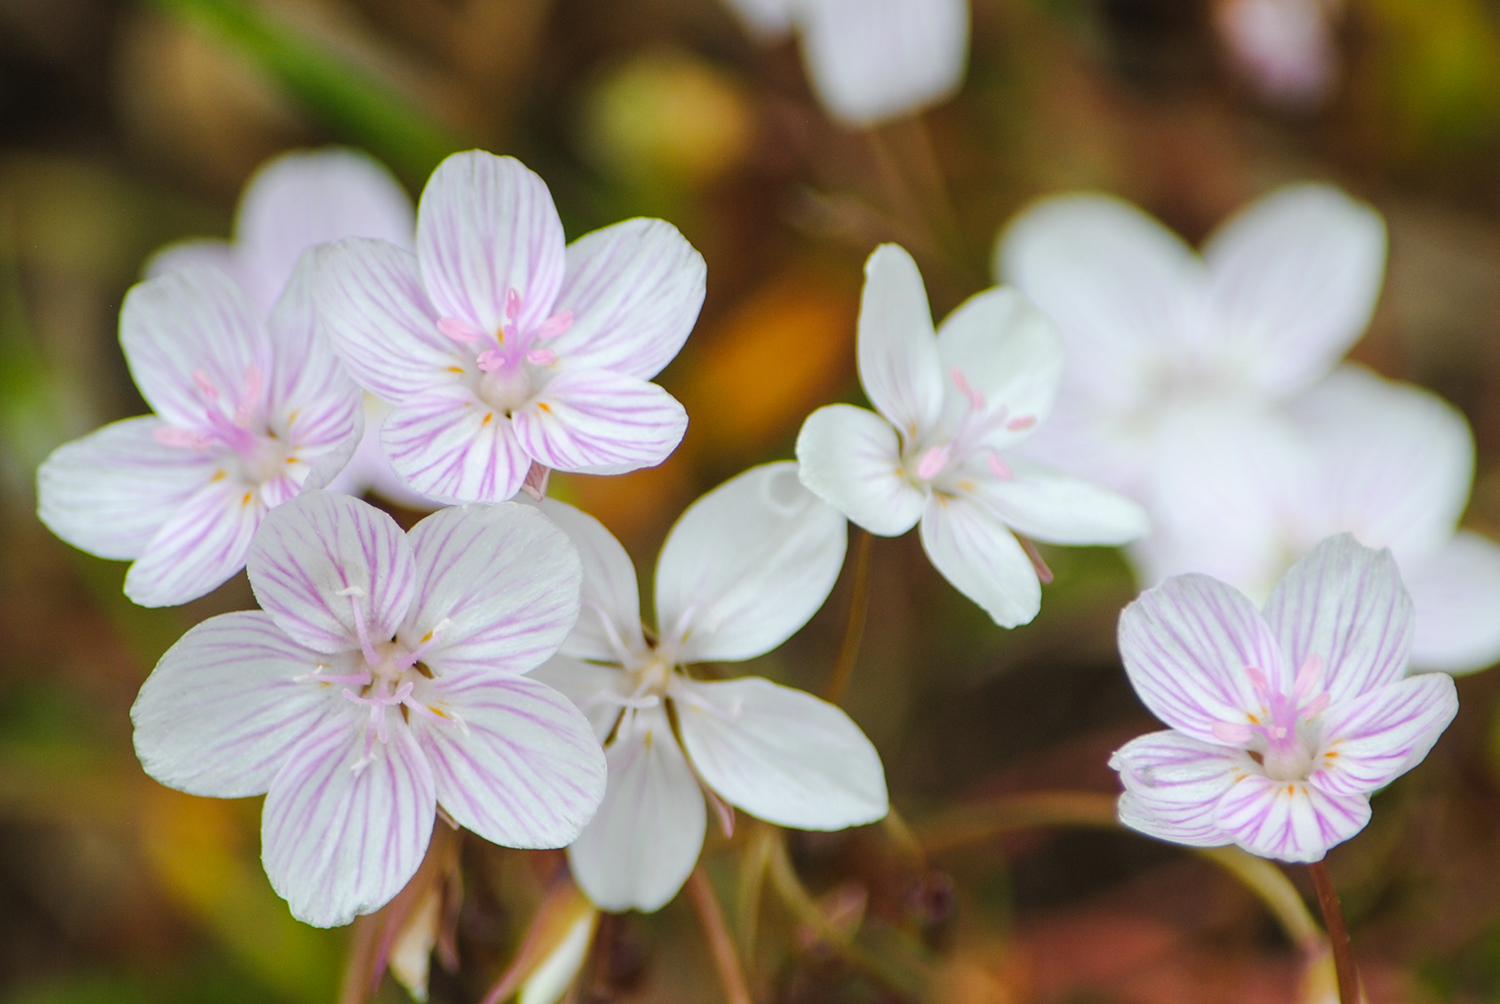 Claytonia virginica  can have different colored blooms in the same population. Here, you see white and pink flowers. Also, notice how pink the stamens are (the five rice-shaped structures near the center of the flower).